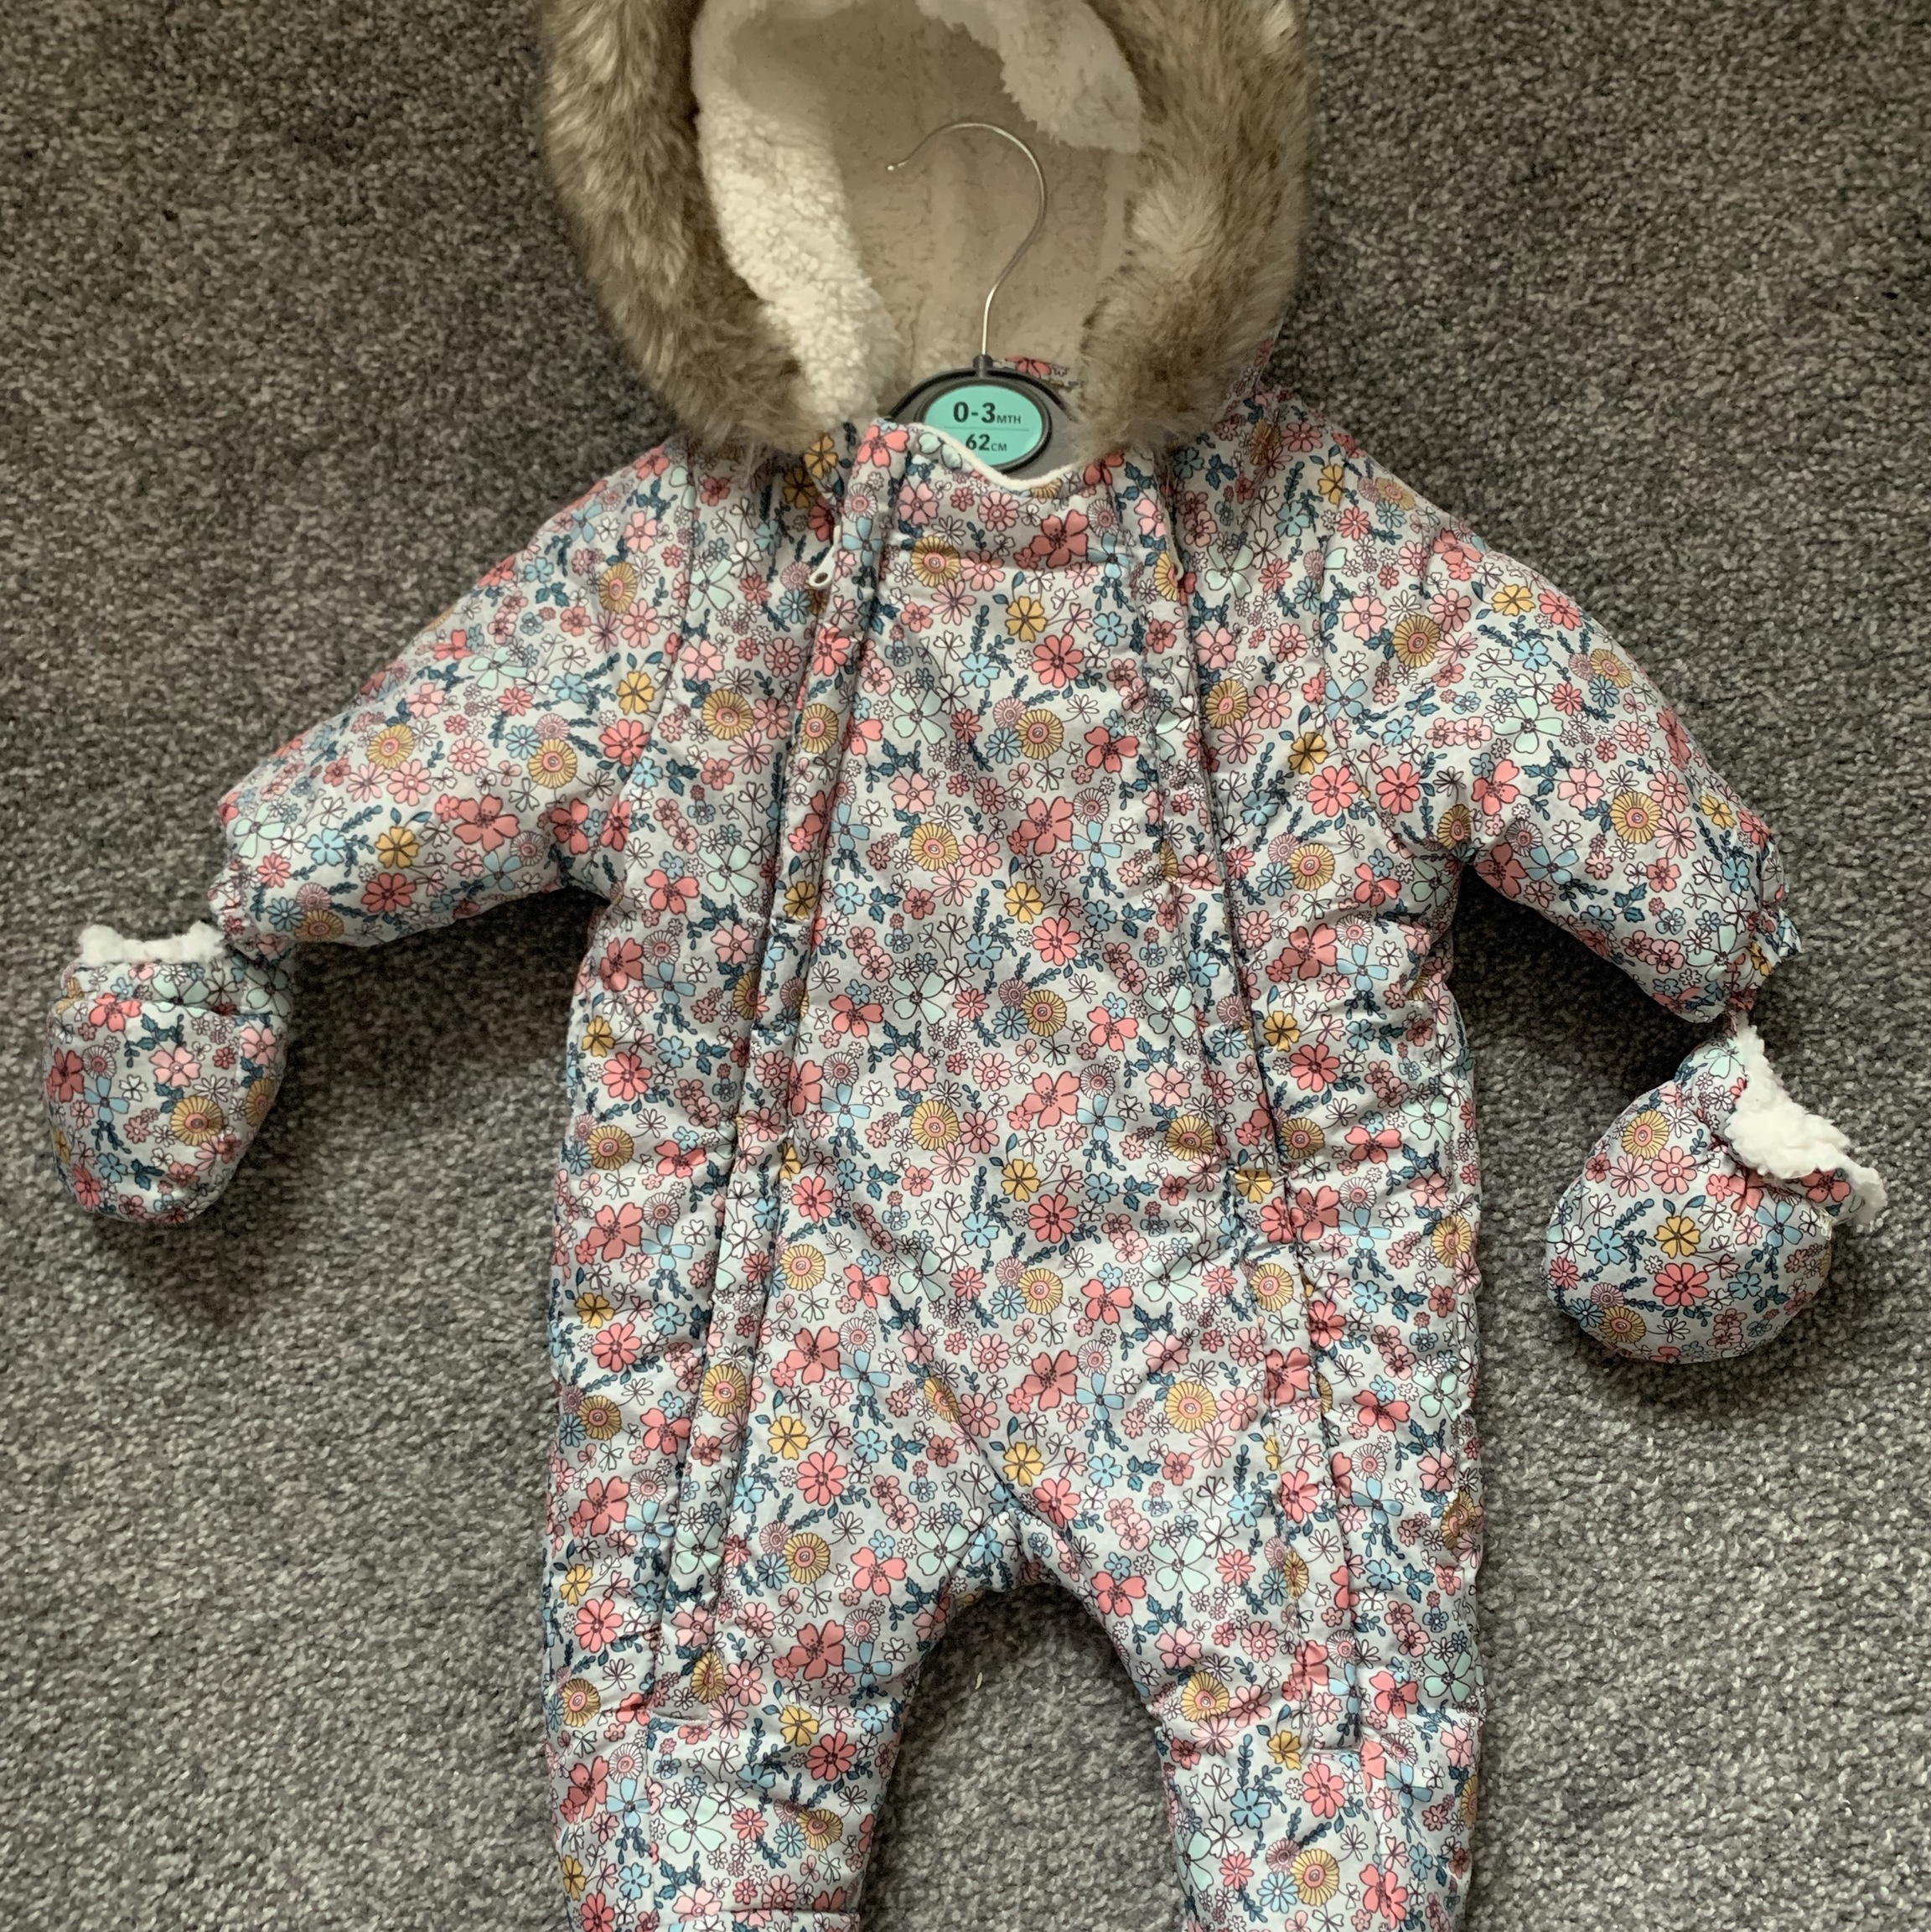 4-4 months baby girl snow suit, never worn